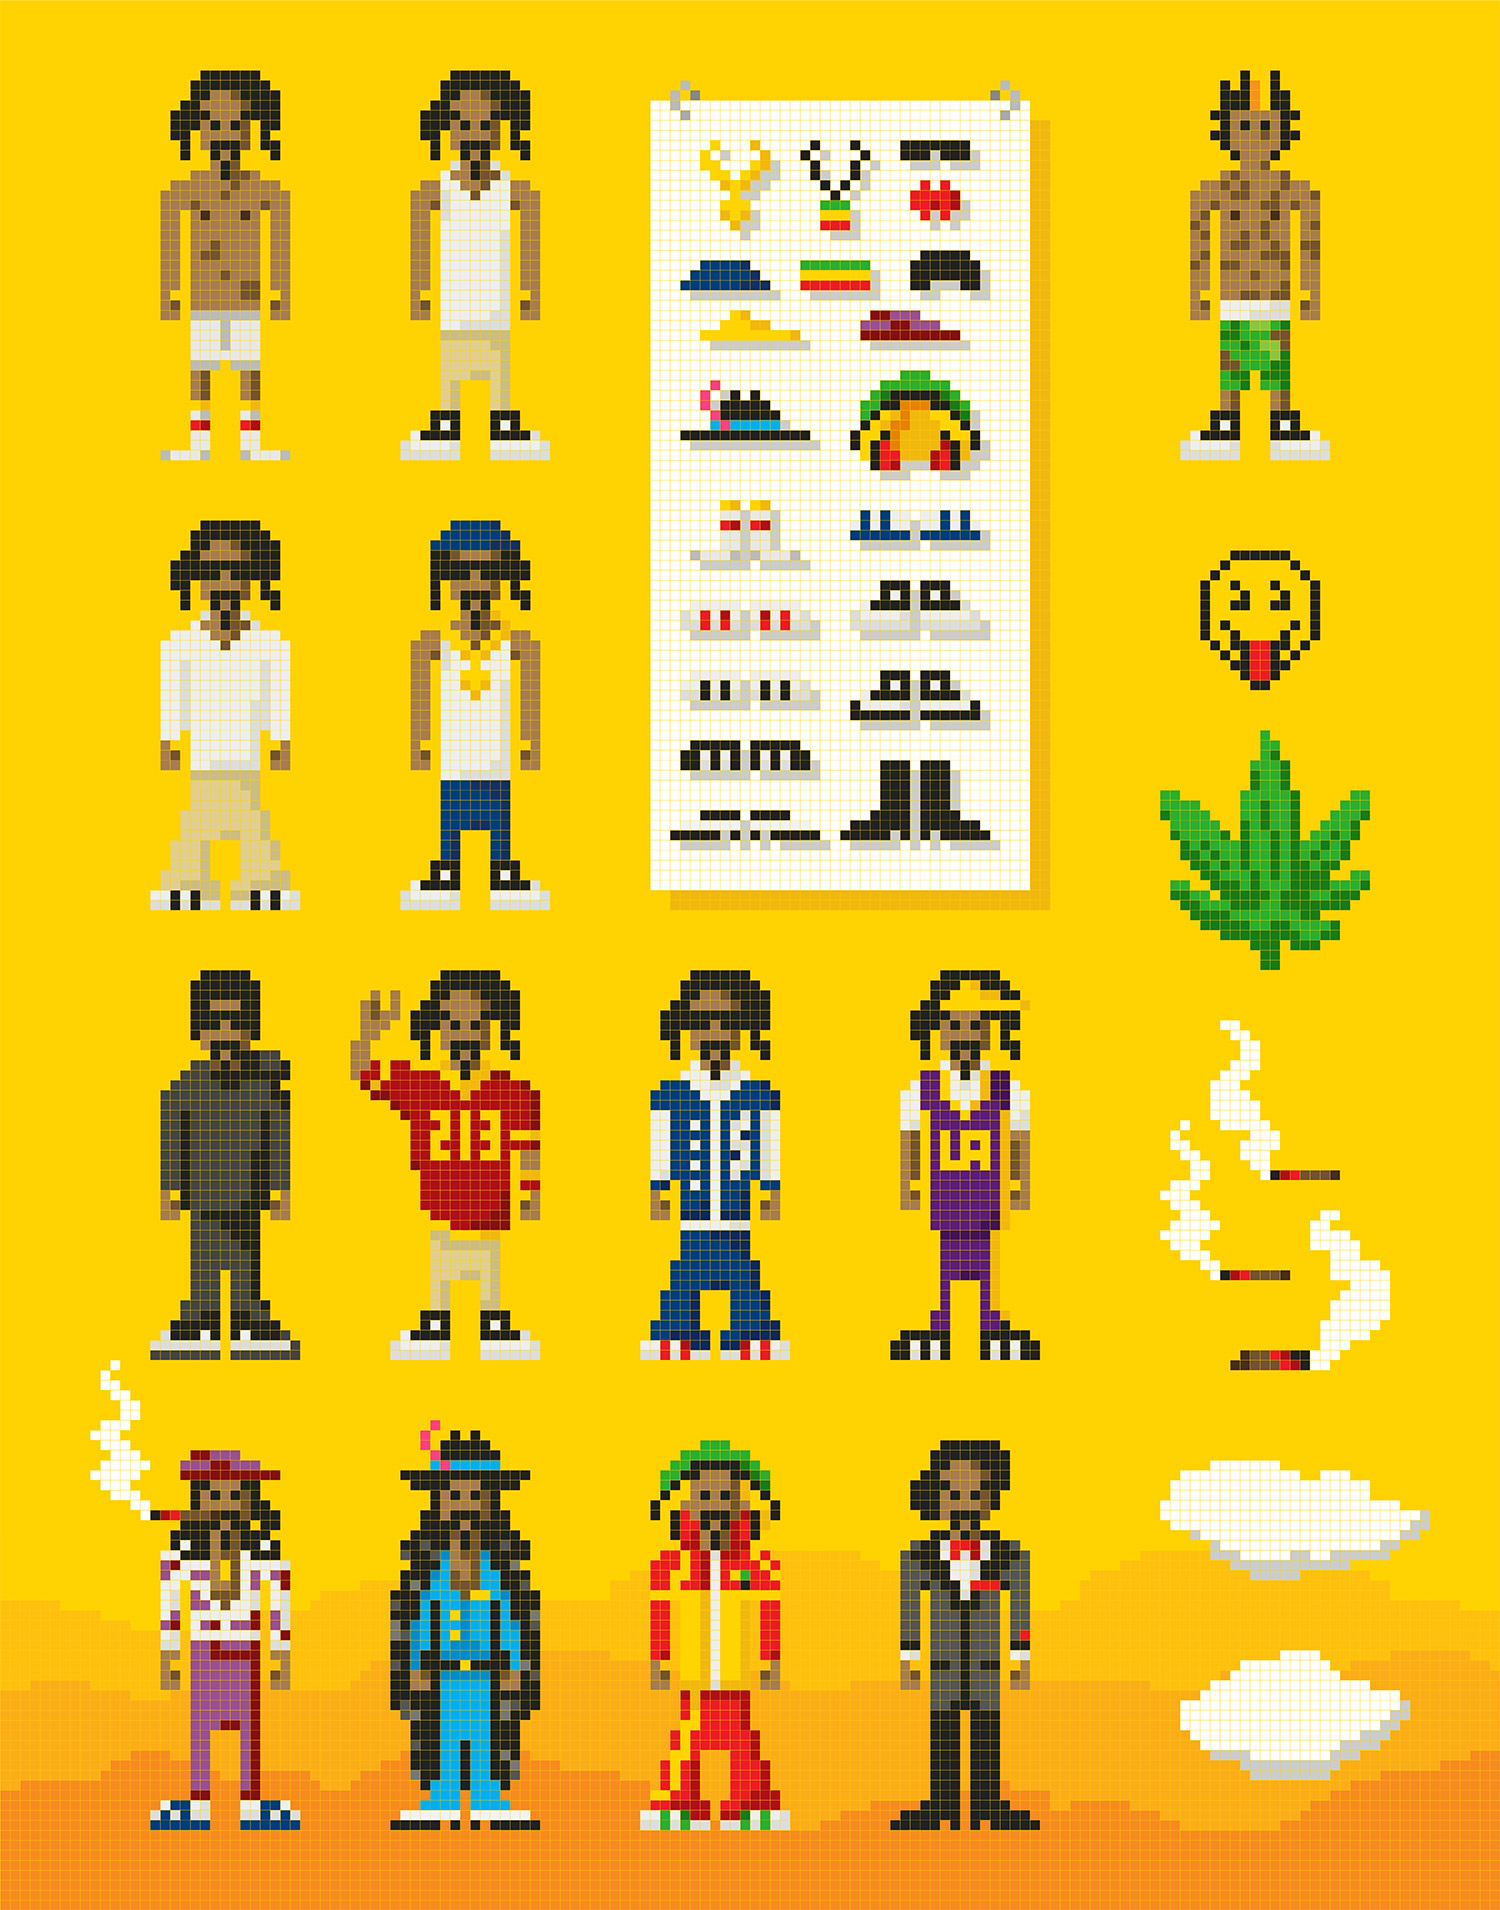 8-bit pixel Vector illustrations of Snoop Dogg & Wiz Khalifa characters